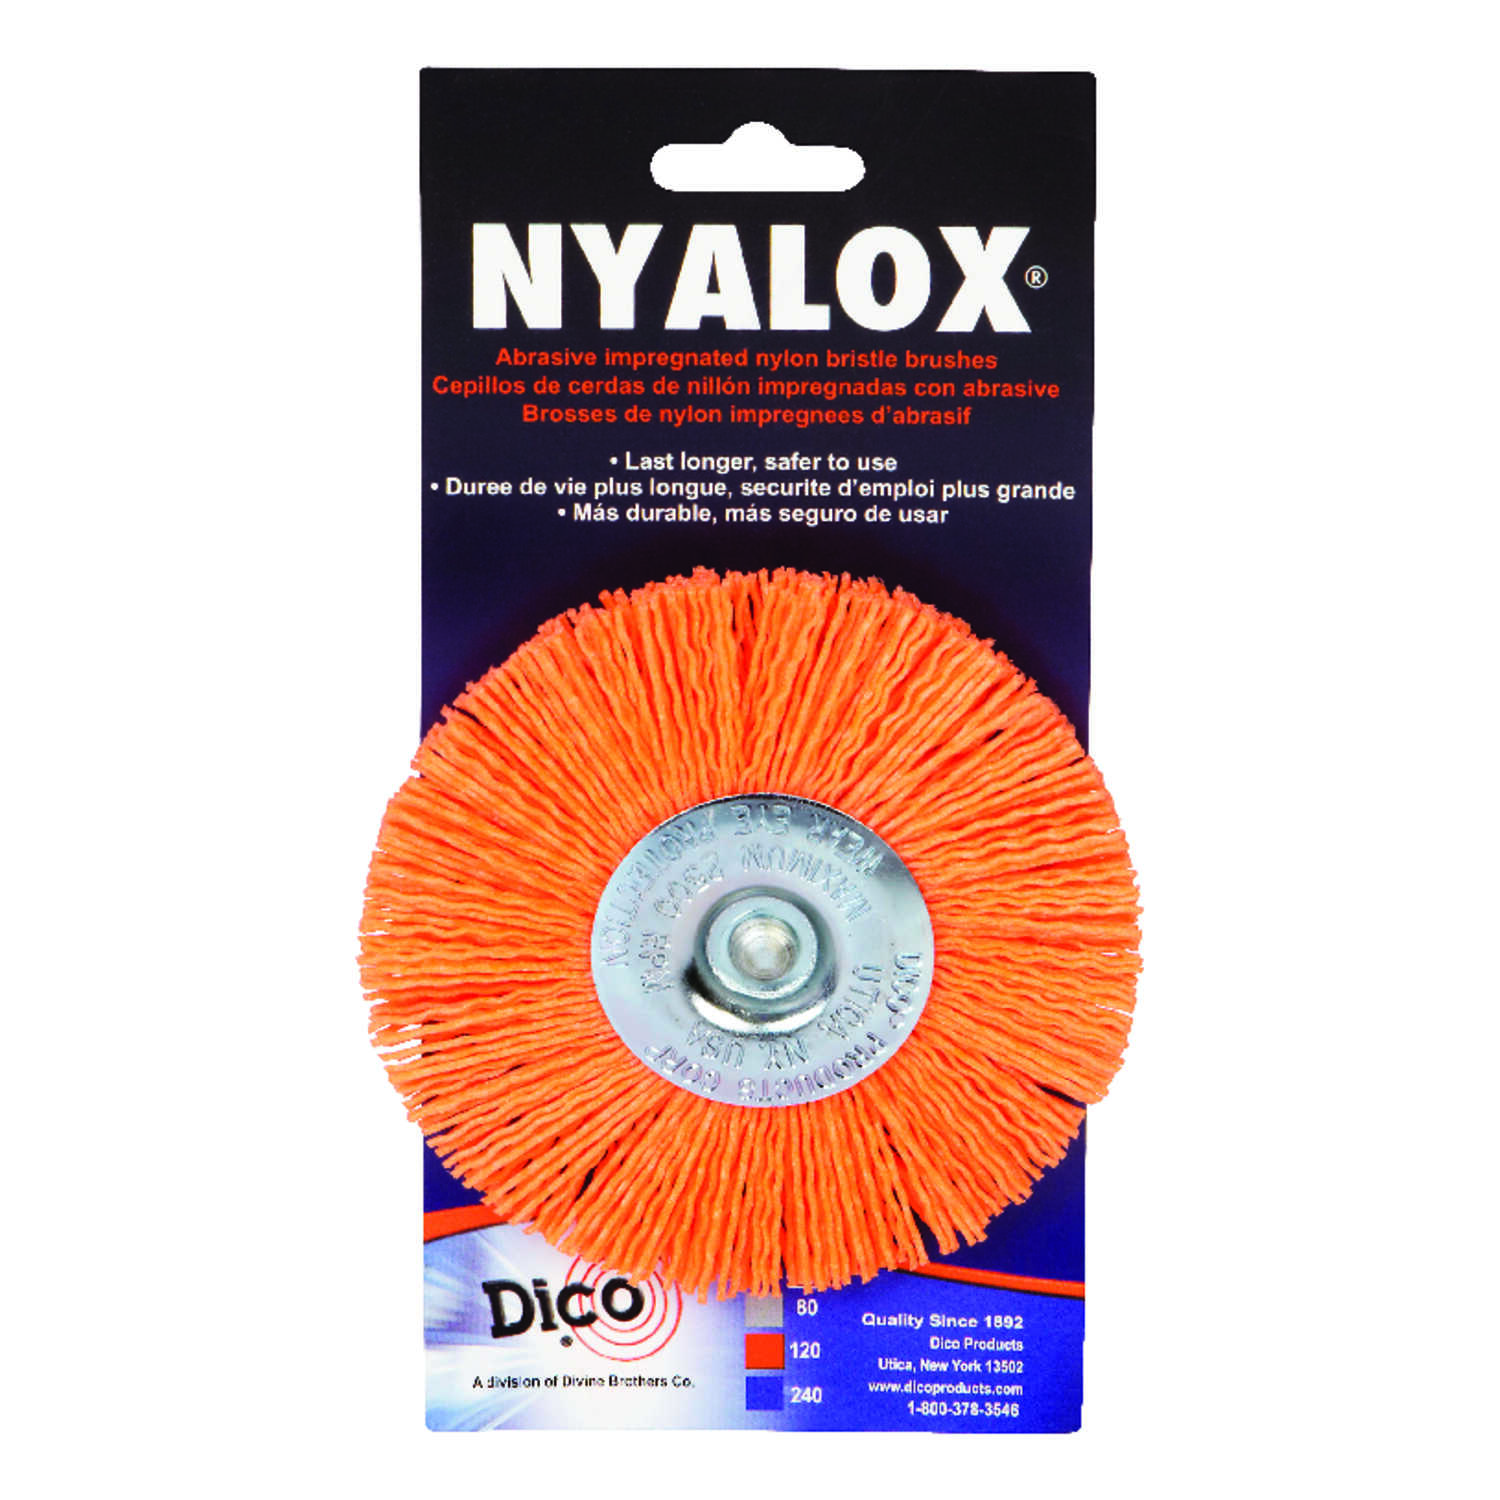 DICO NYALOX  4 in. 1/4  Wheel Brush  Nylon  2500 rpm 1 pc. Twisted